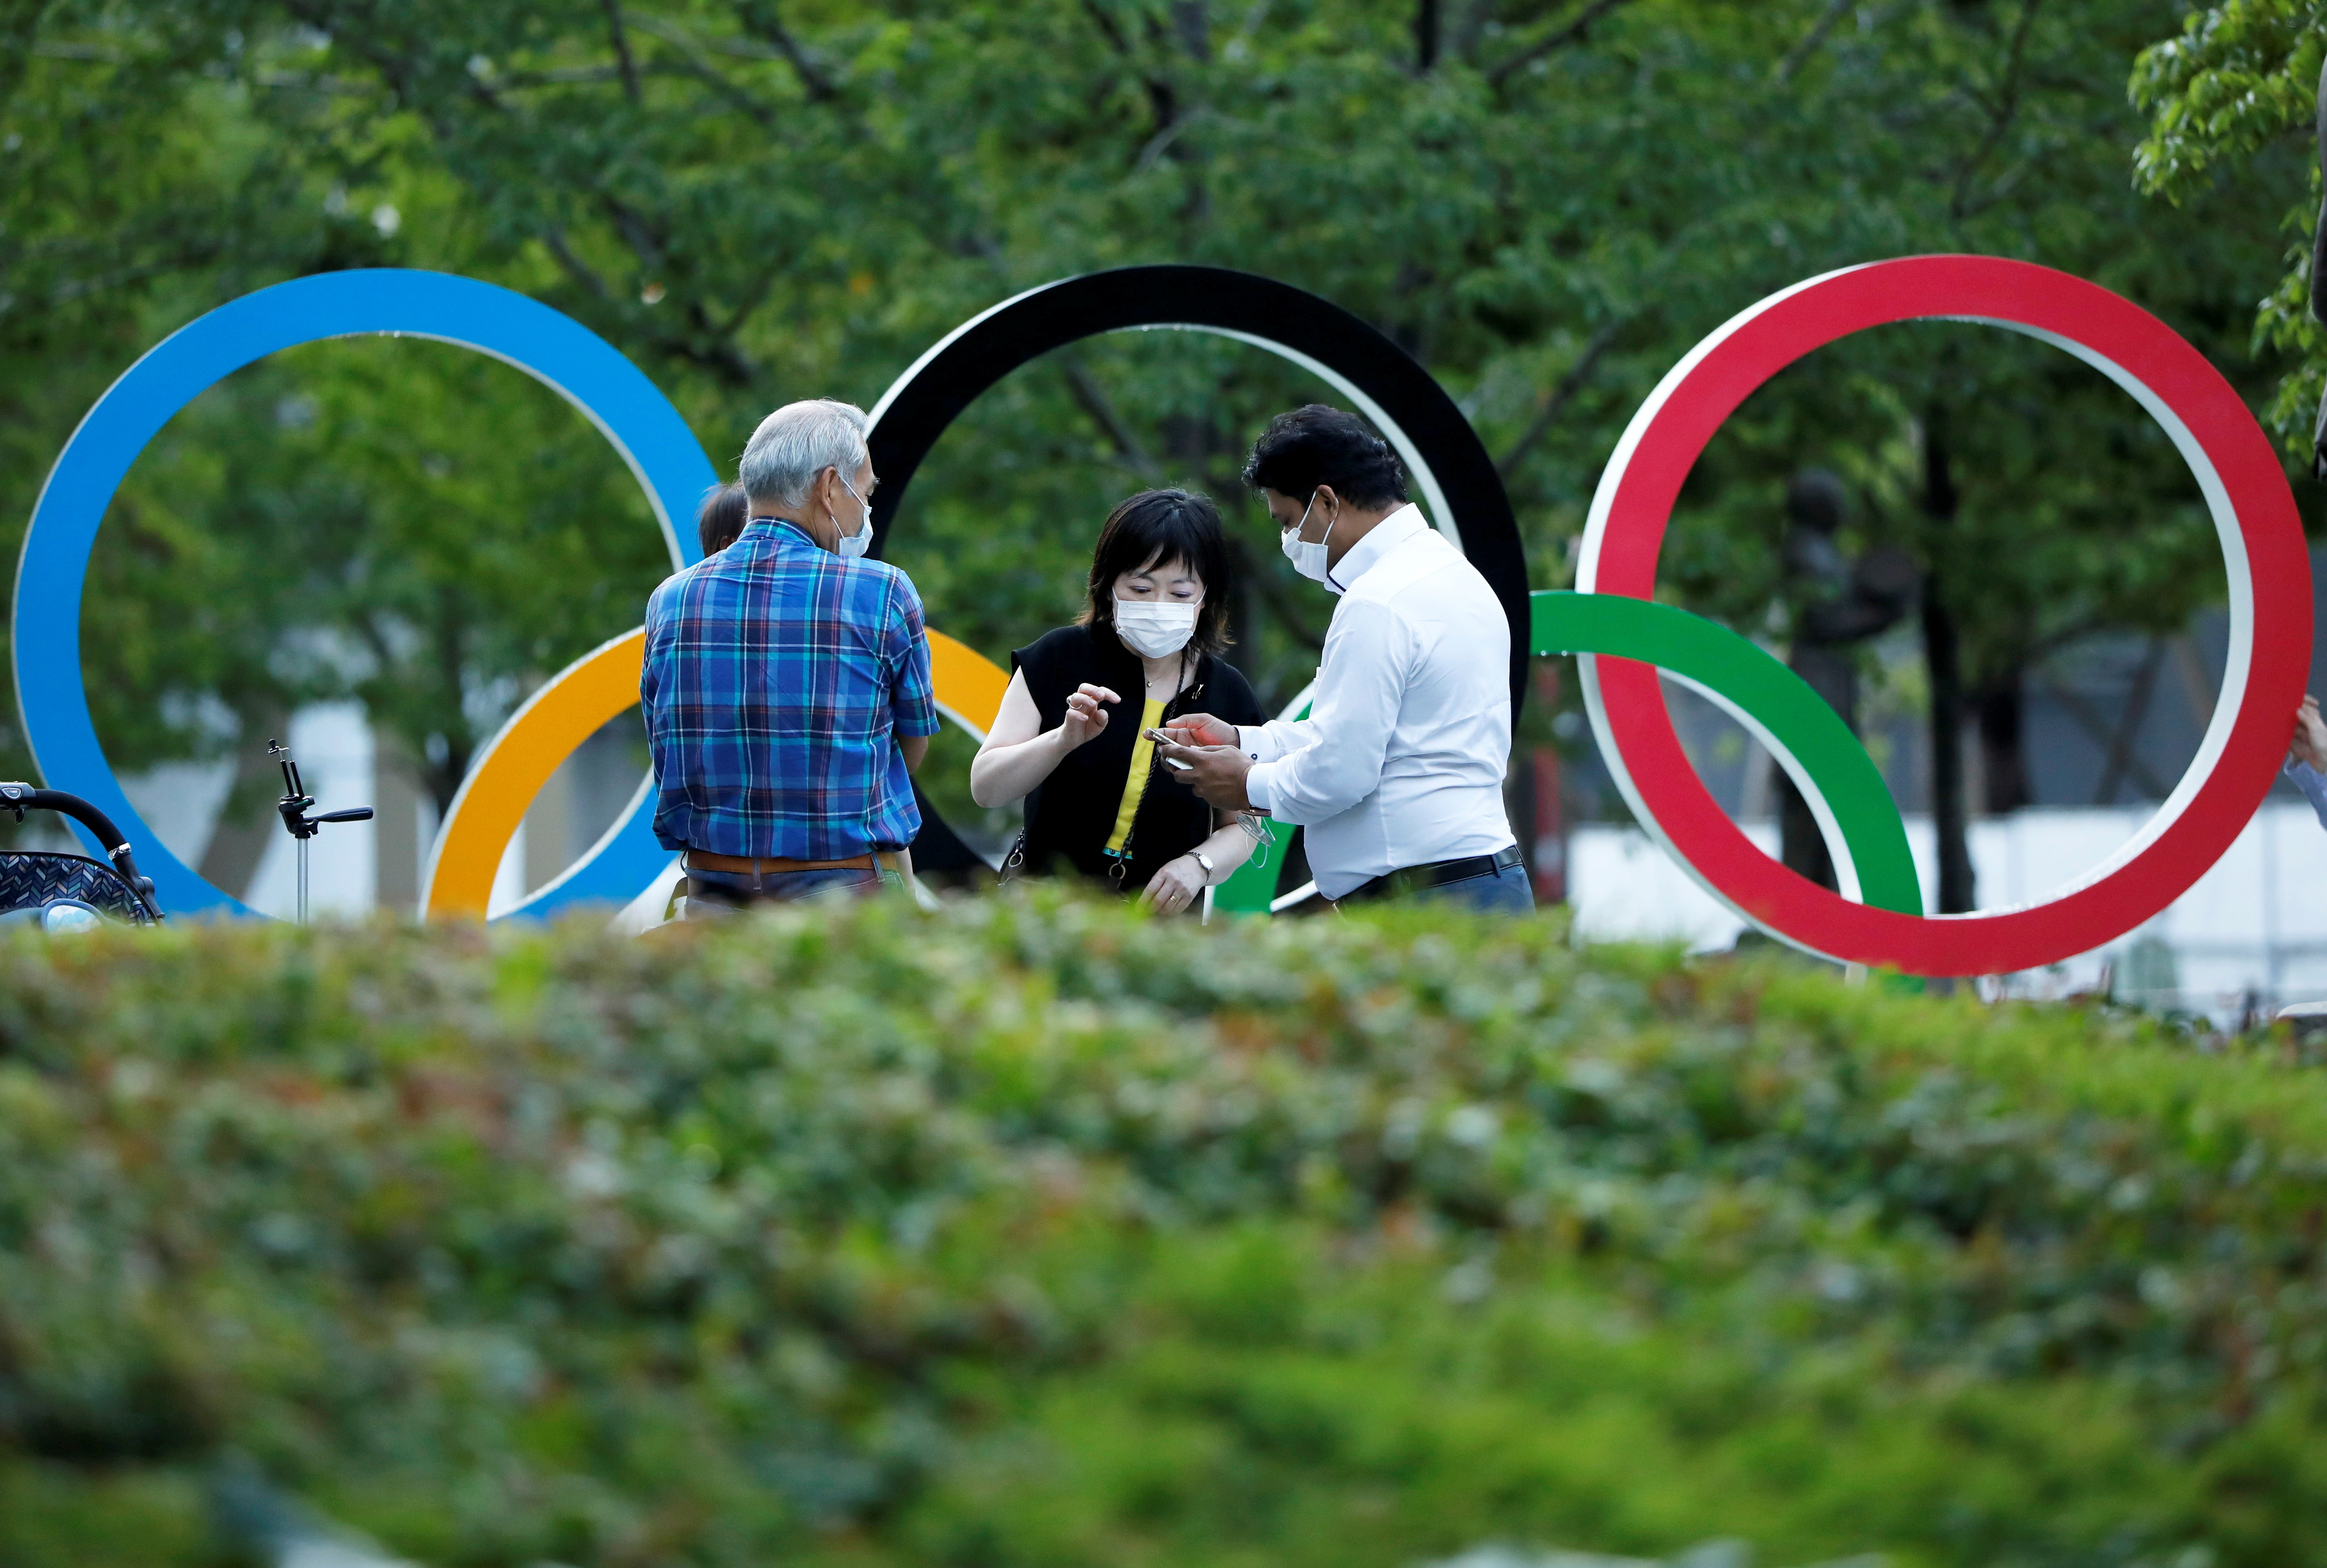 People chat next to Olympic Rings monument outside the Japan Olympic Committee (JOC) headquarters near the National Stadium, the main stadium for the 2020 Tokyo Olympic Games that have been postponed to 2021 due to the COVID-19 pandemic, in Tokyo, June 23, 2021 on the day to mark one month to go until the opening of the Olympic Games.  REUTERS/Issei Kato - RC296O9SBN01